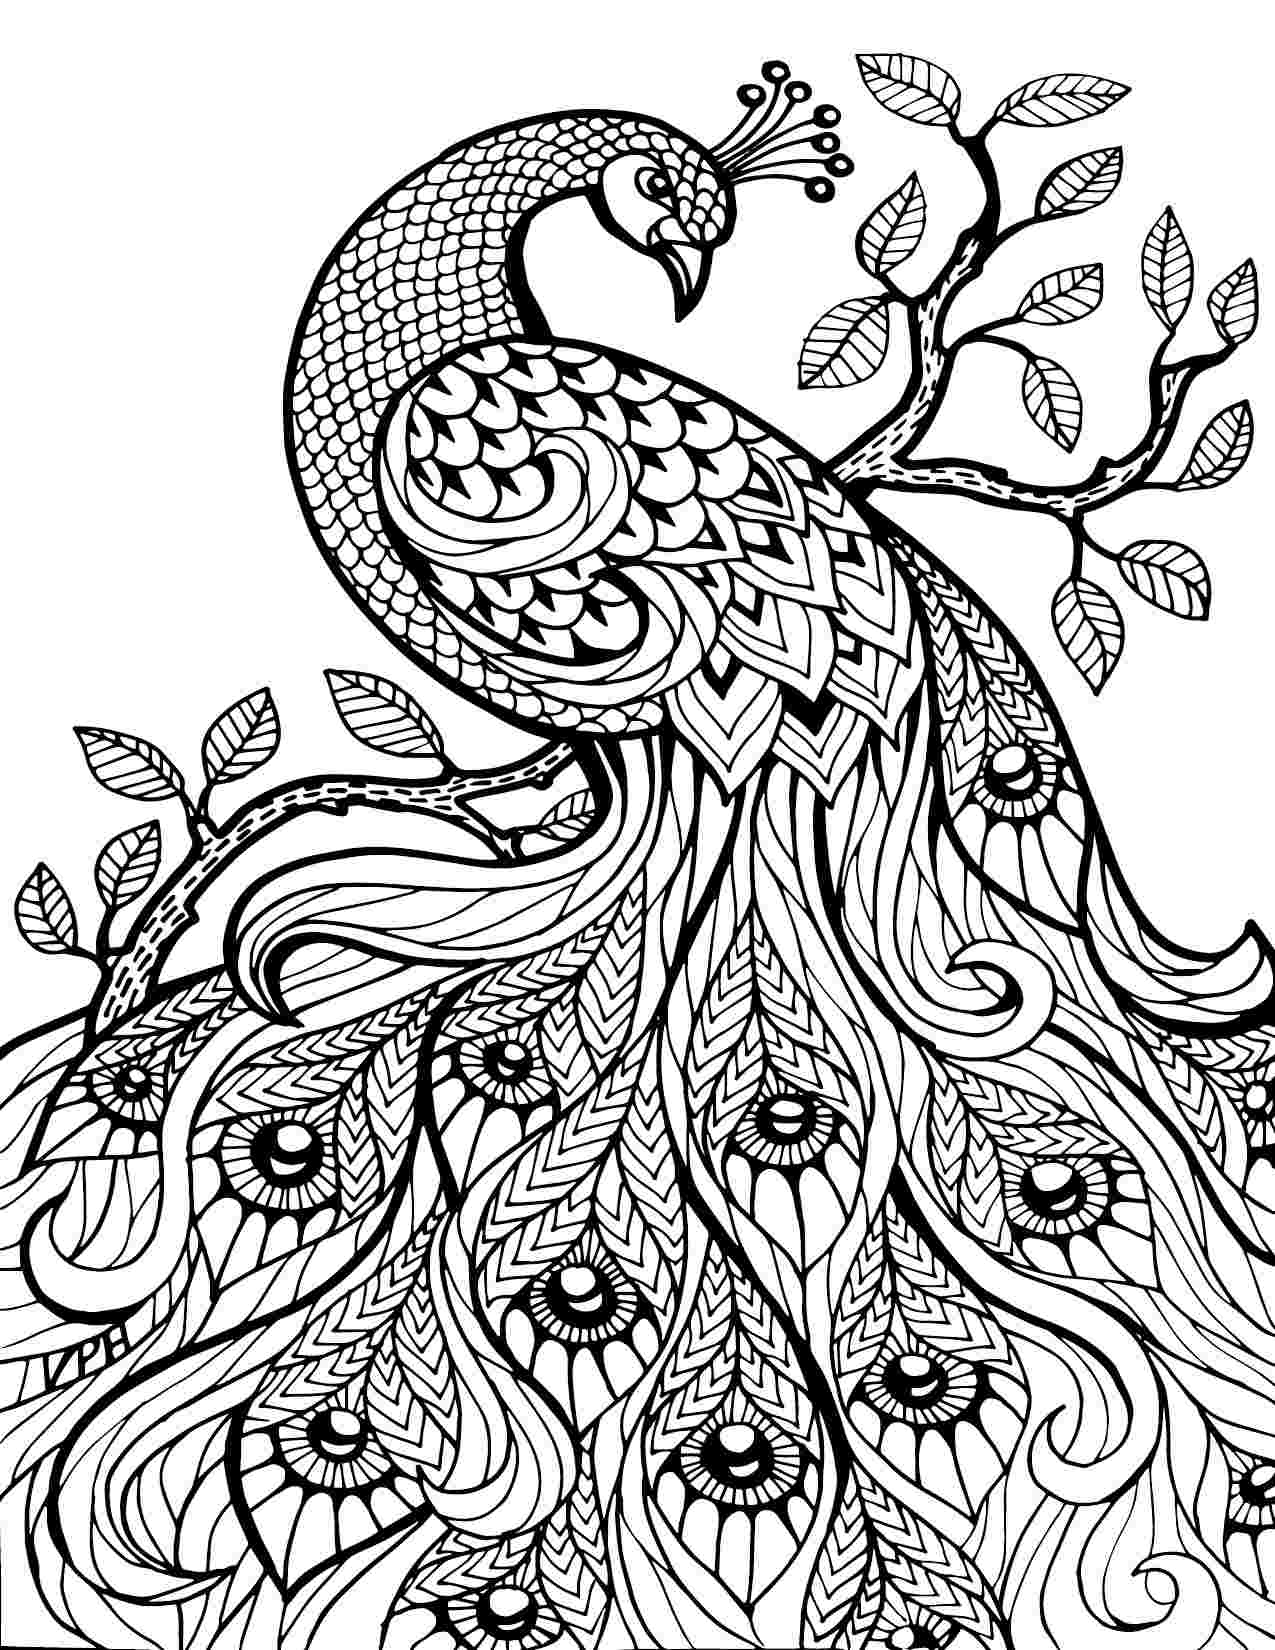 Coloring Sheet- Peacock